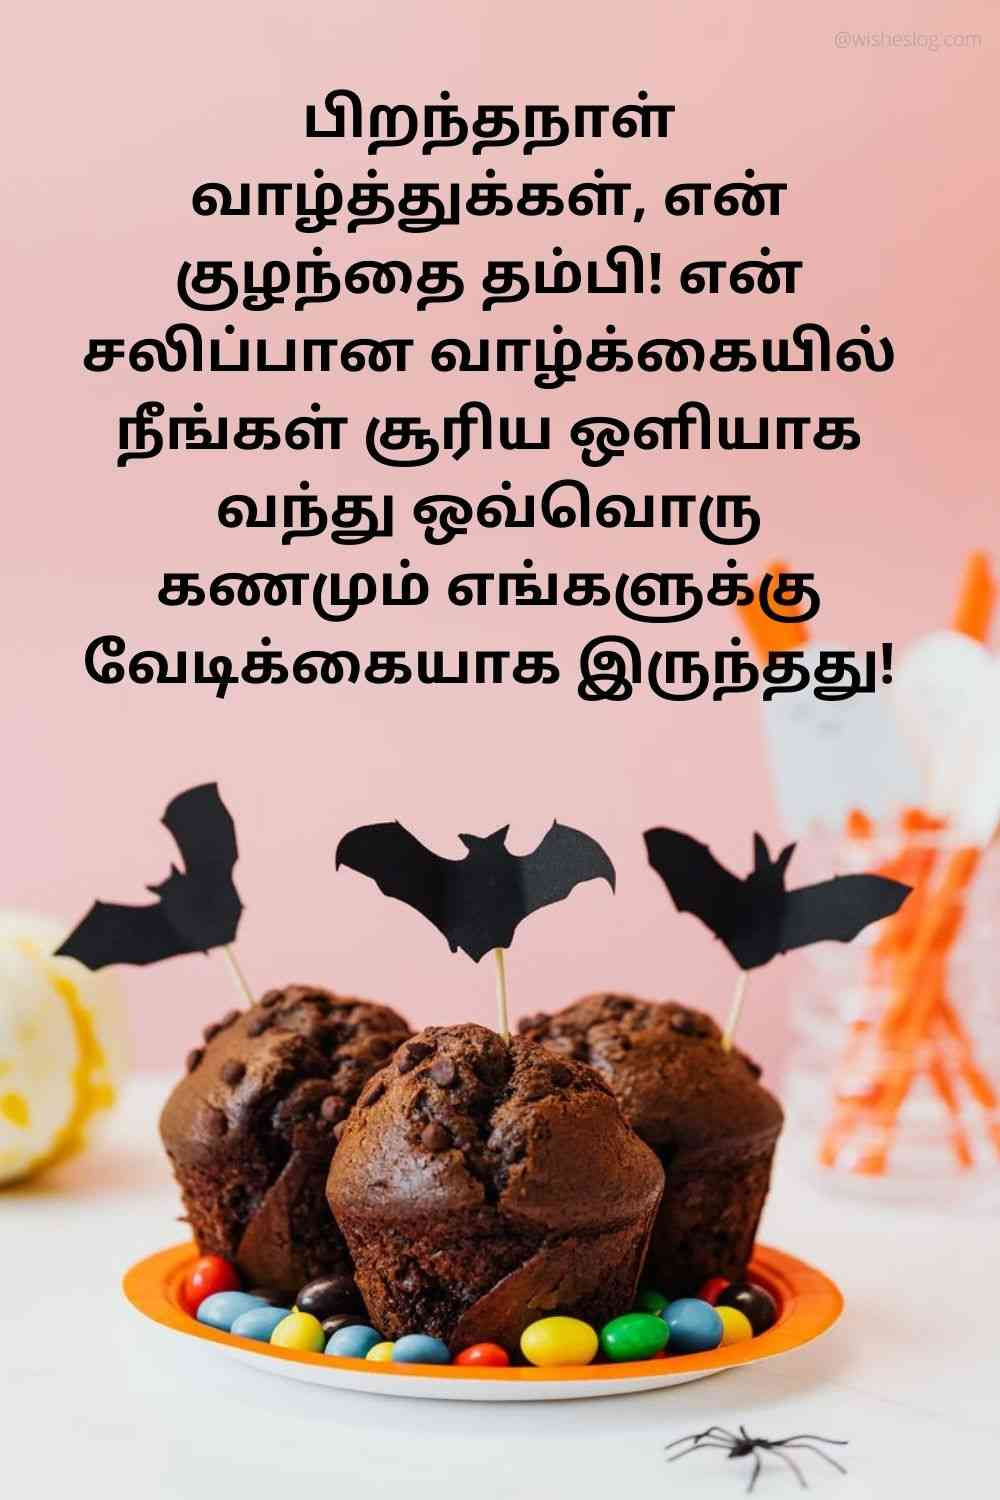 happy birthday images in tamil for little brother